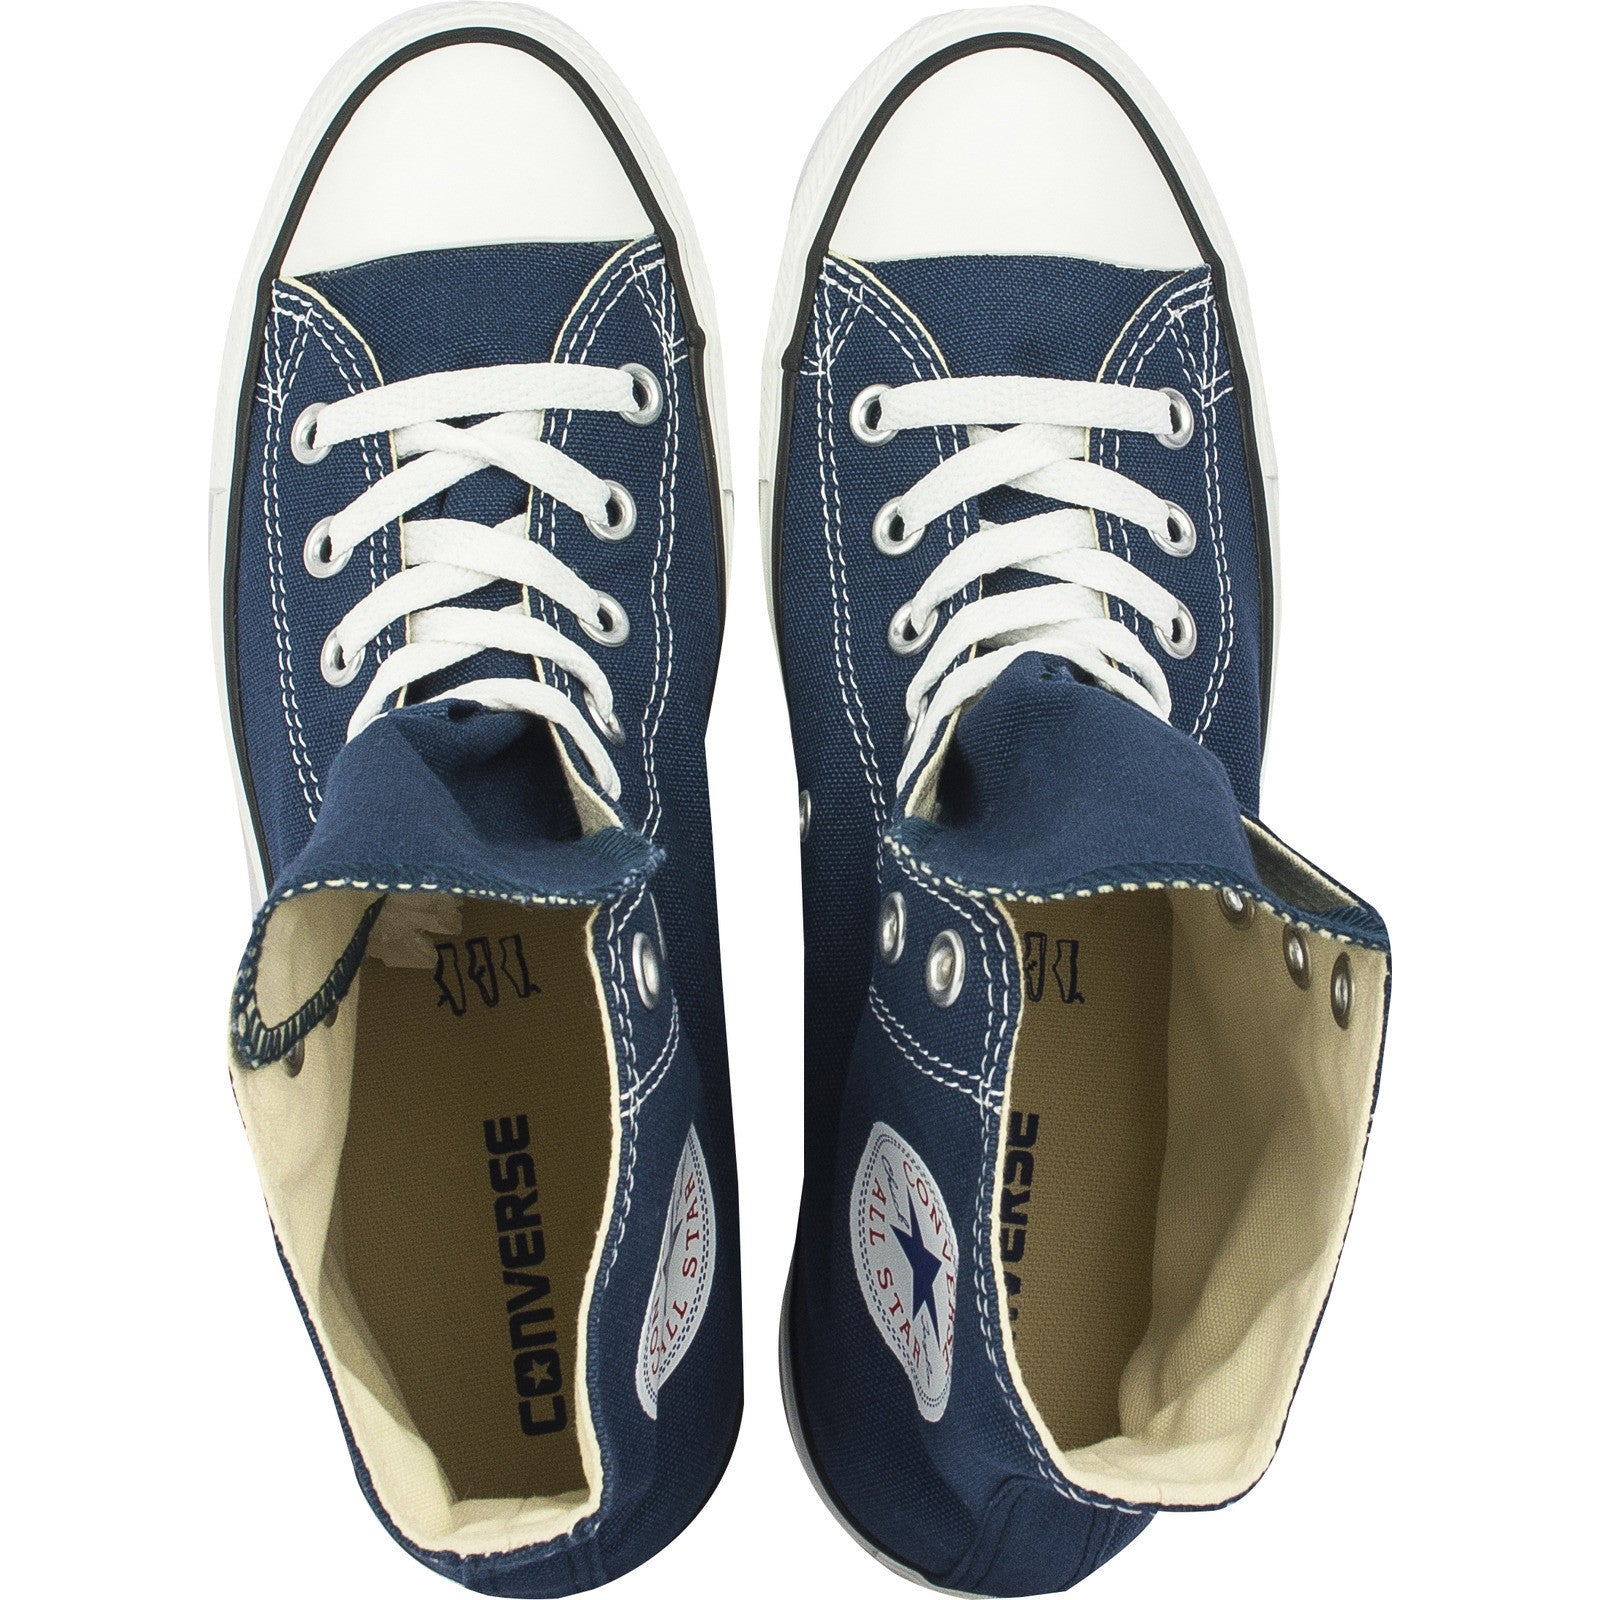 c240978cf702b ... Converse Classic Chuck Taylor All Star Navy Blue HI High M9622C Trainer  Sneaker NEW